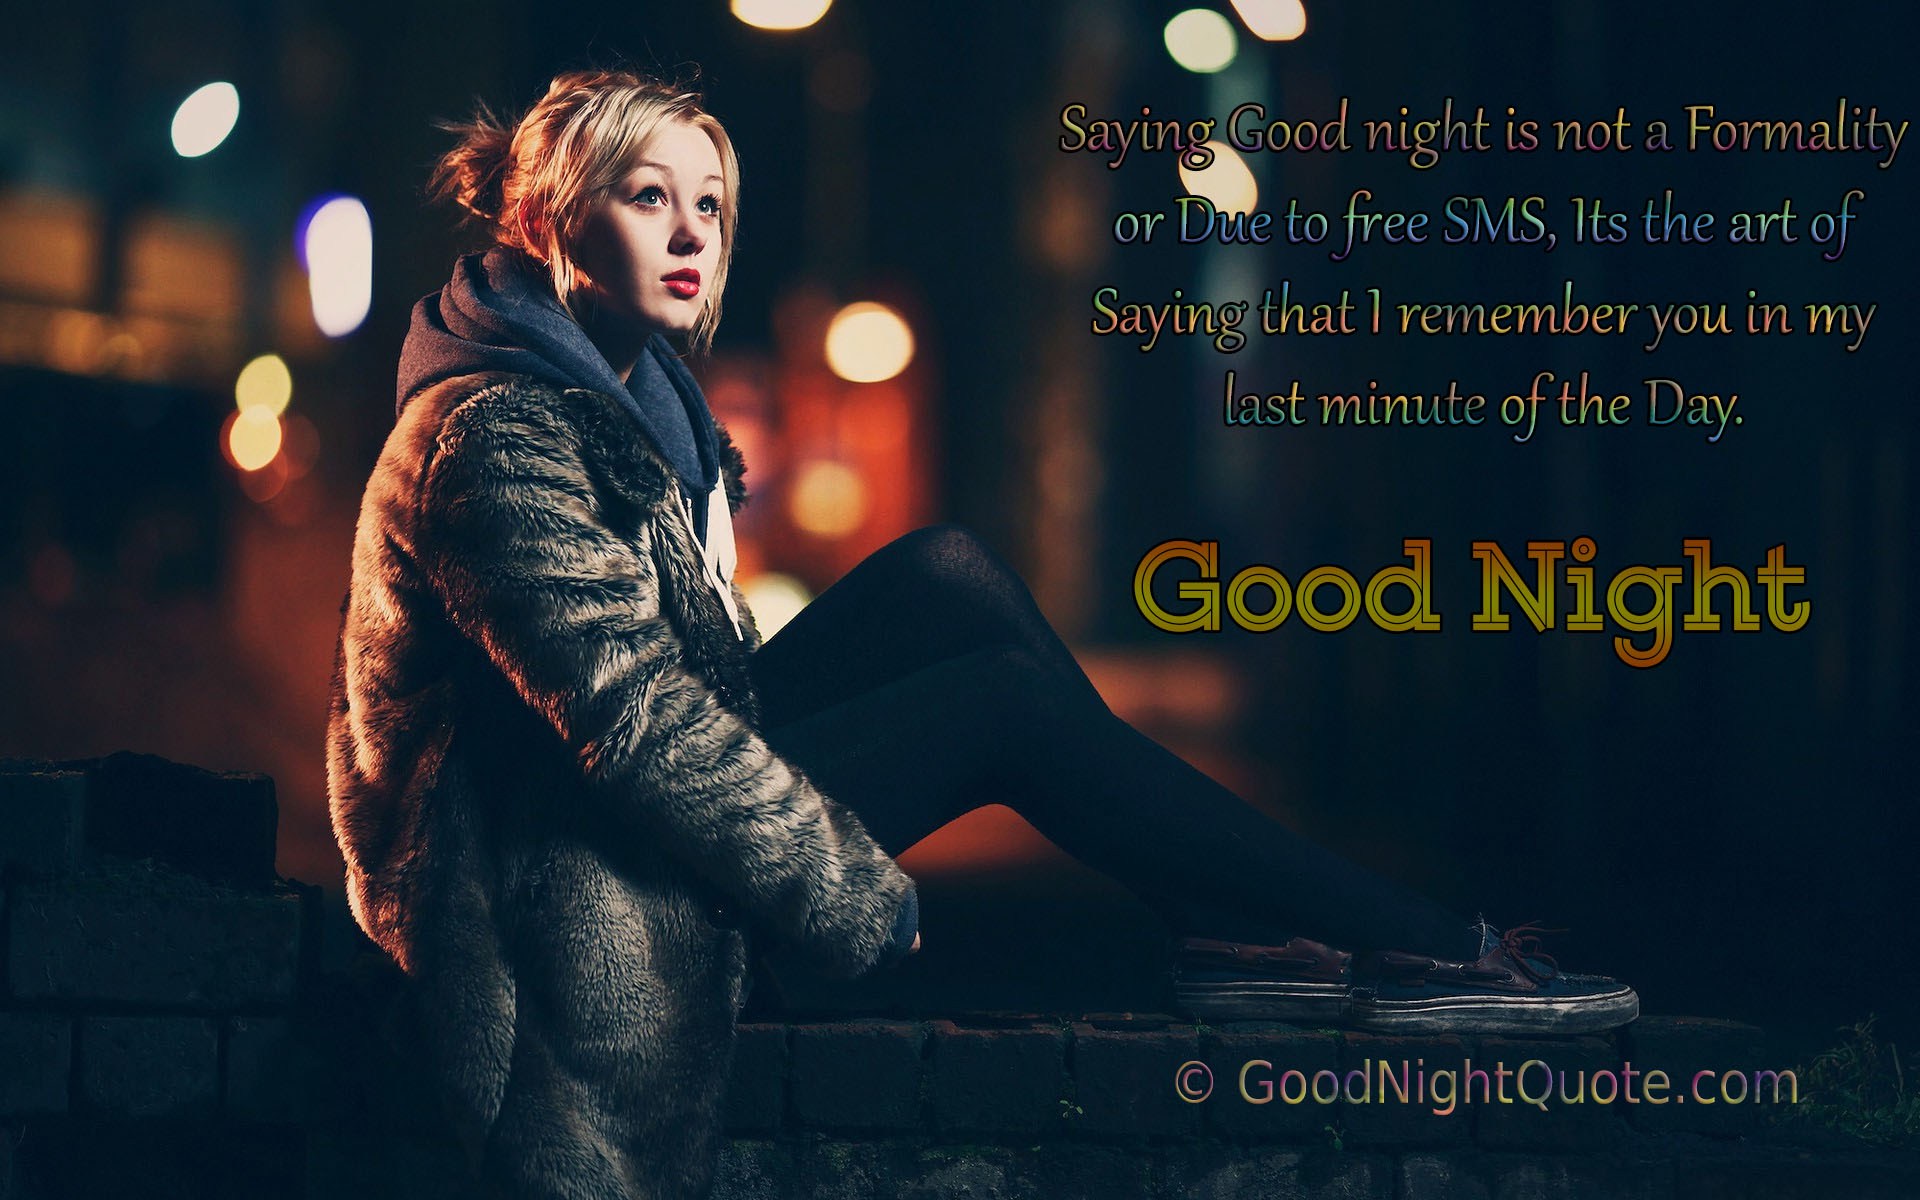 Good Night Messages For Friends - I remember you in my last minute of the Day